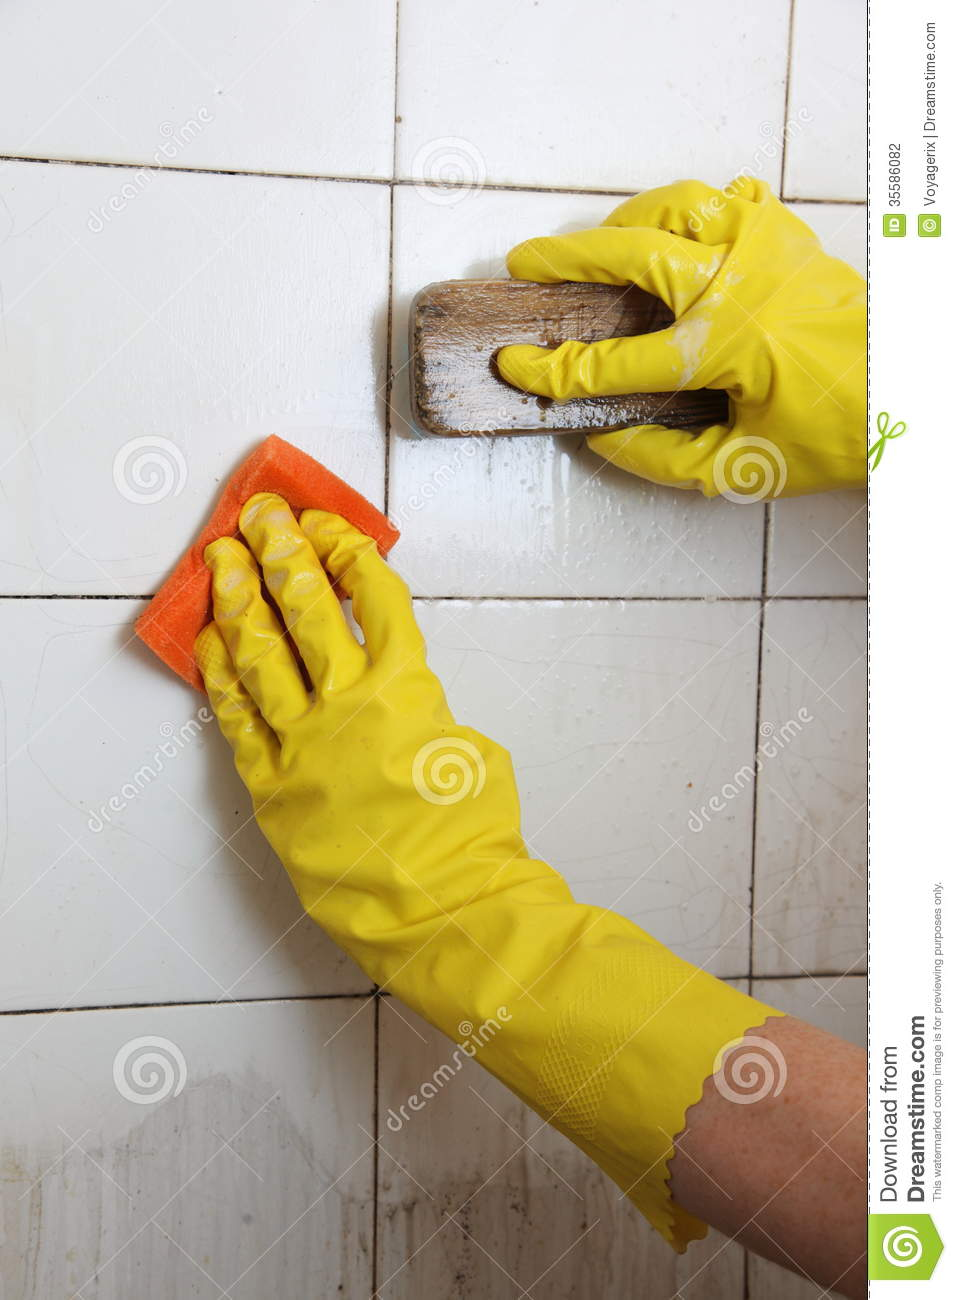 Cleaning Dirty Bathroom Tiles. Cleaning Of Dirty Old Tiles In A Bathroom